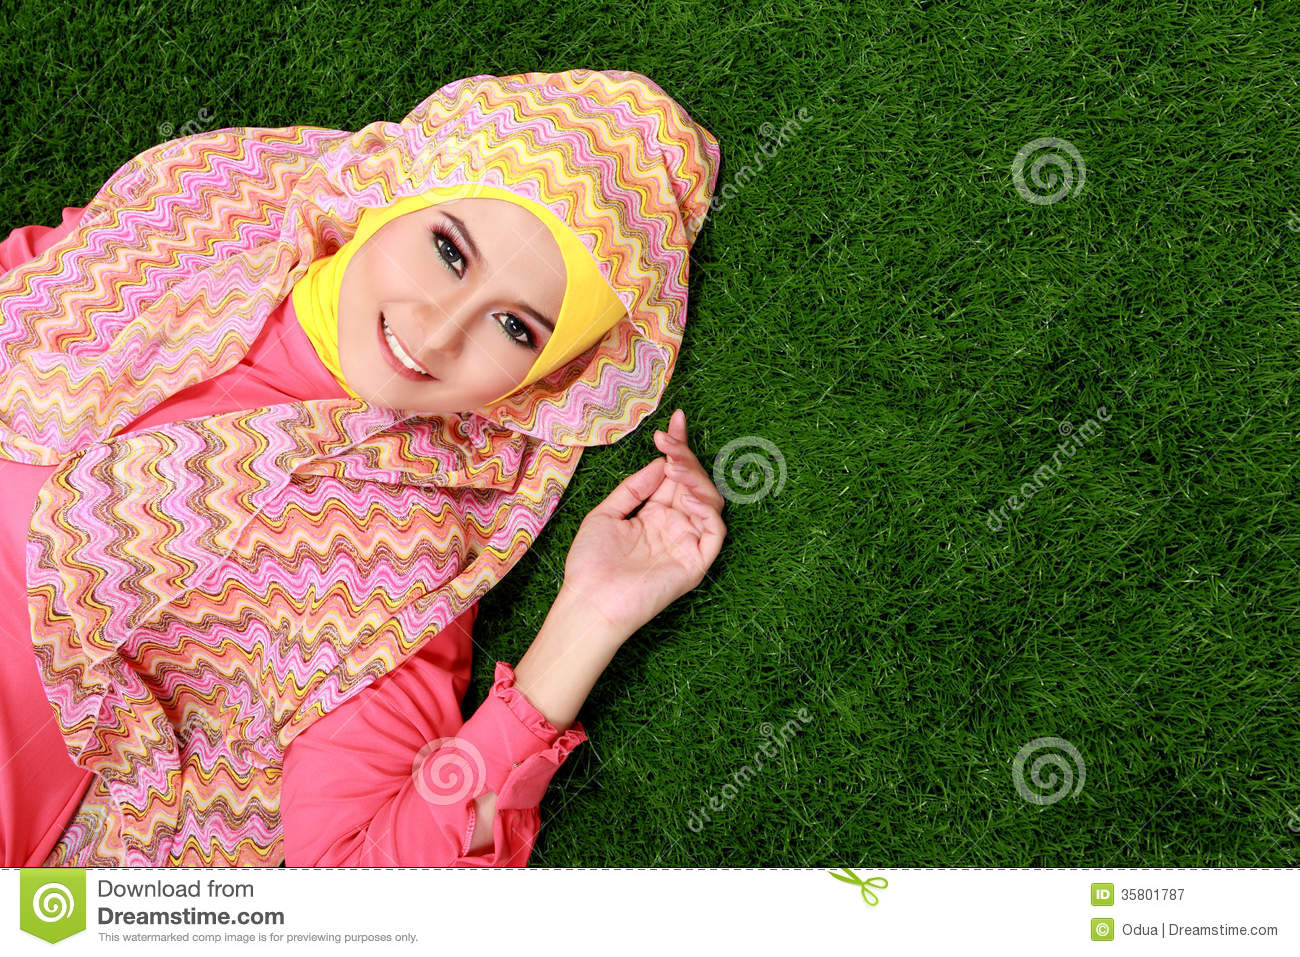 lodge grass muslim single women Personal ads for lodge grass view all singles in lodge grass many women use dating apps to confirm their att.